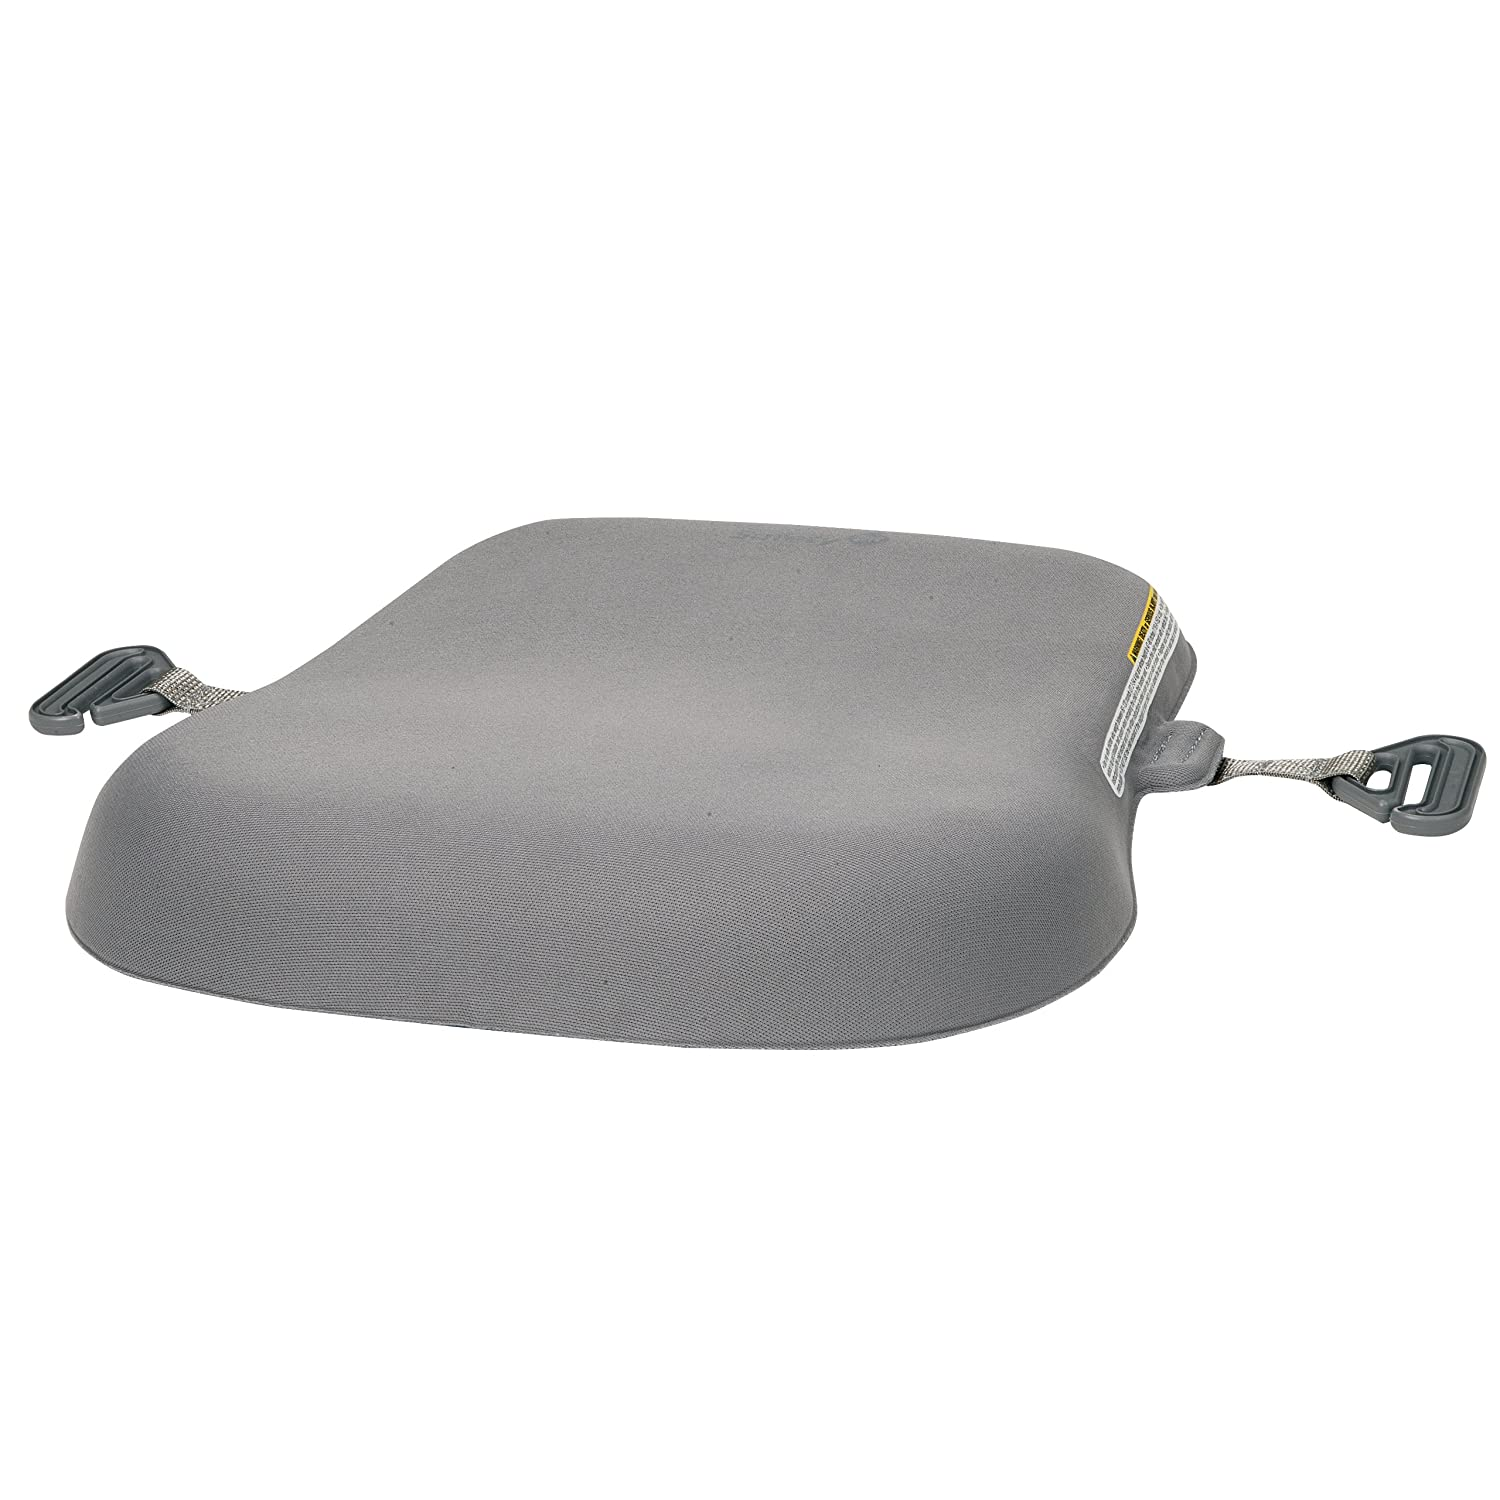 Safety 1st Incognito Kid Positioning Seat, Dark Gray by Safety 1st: Amazon.es: Bebé